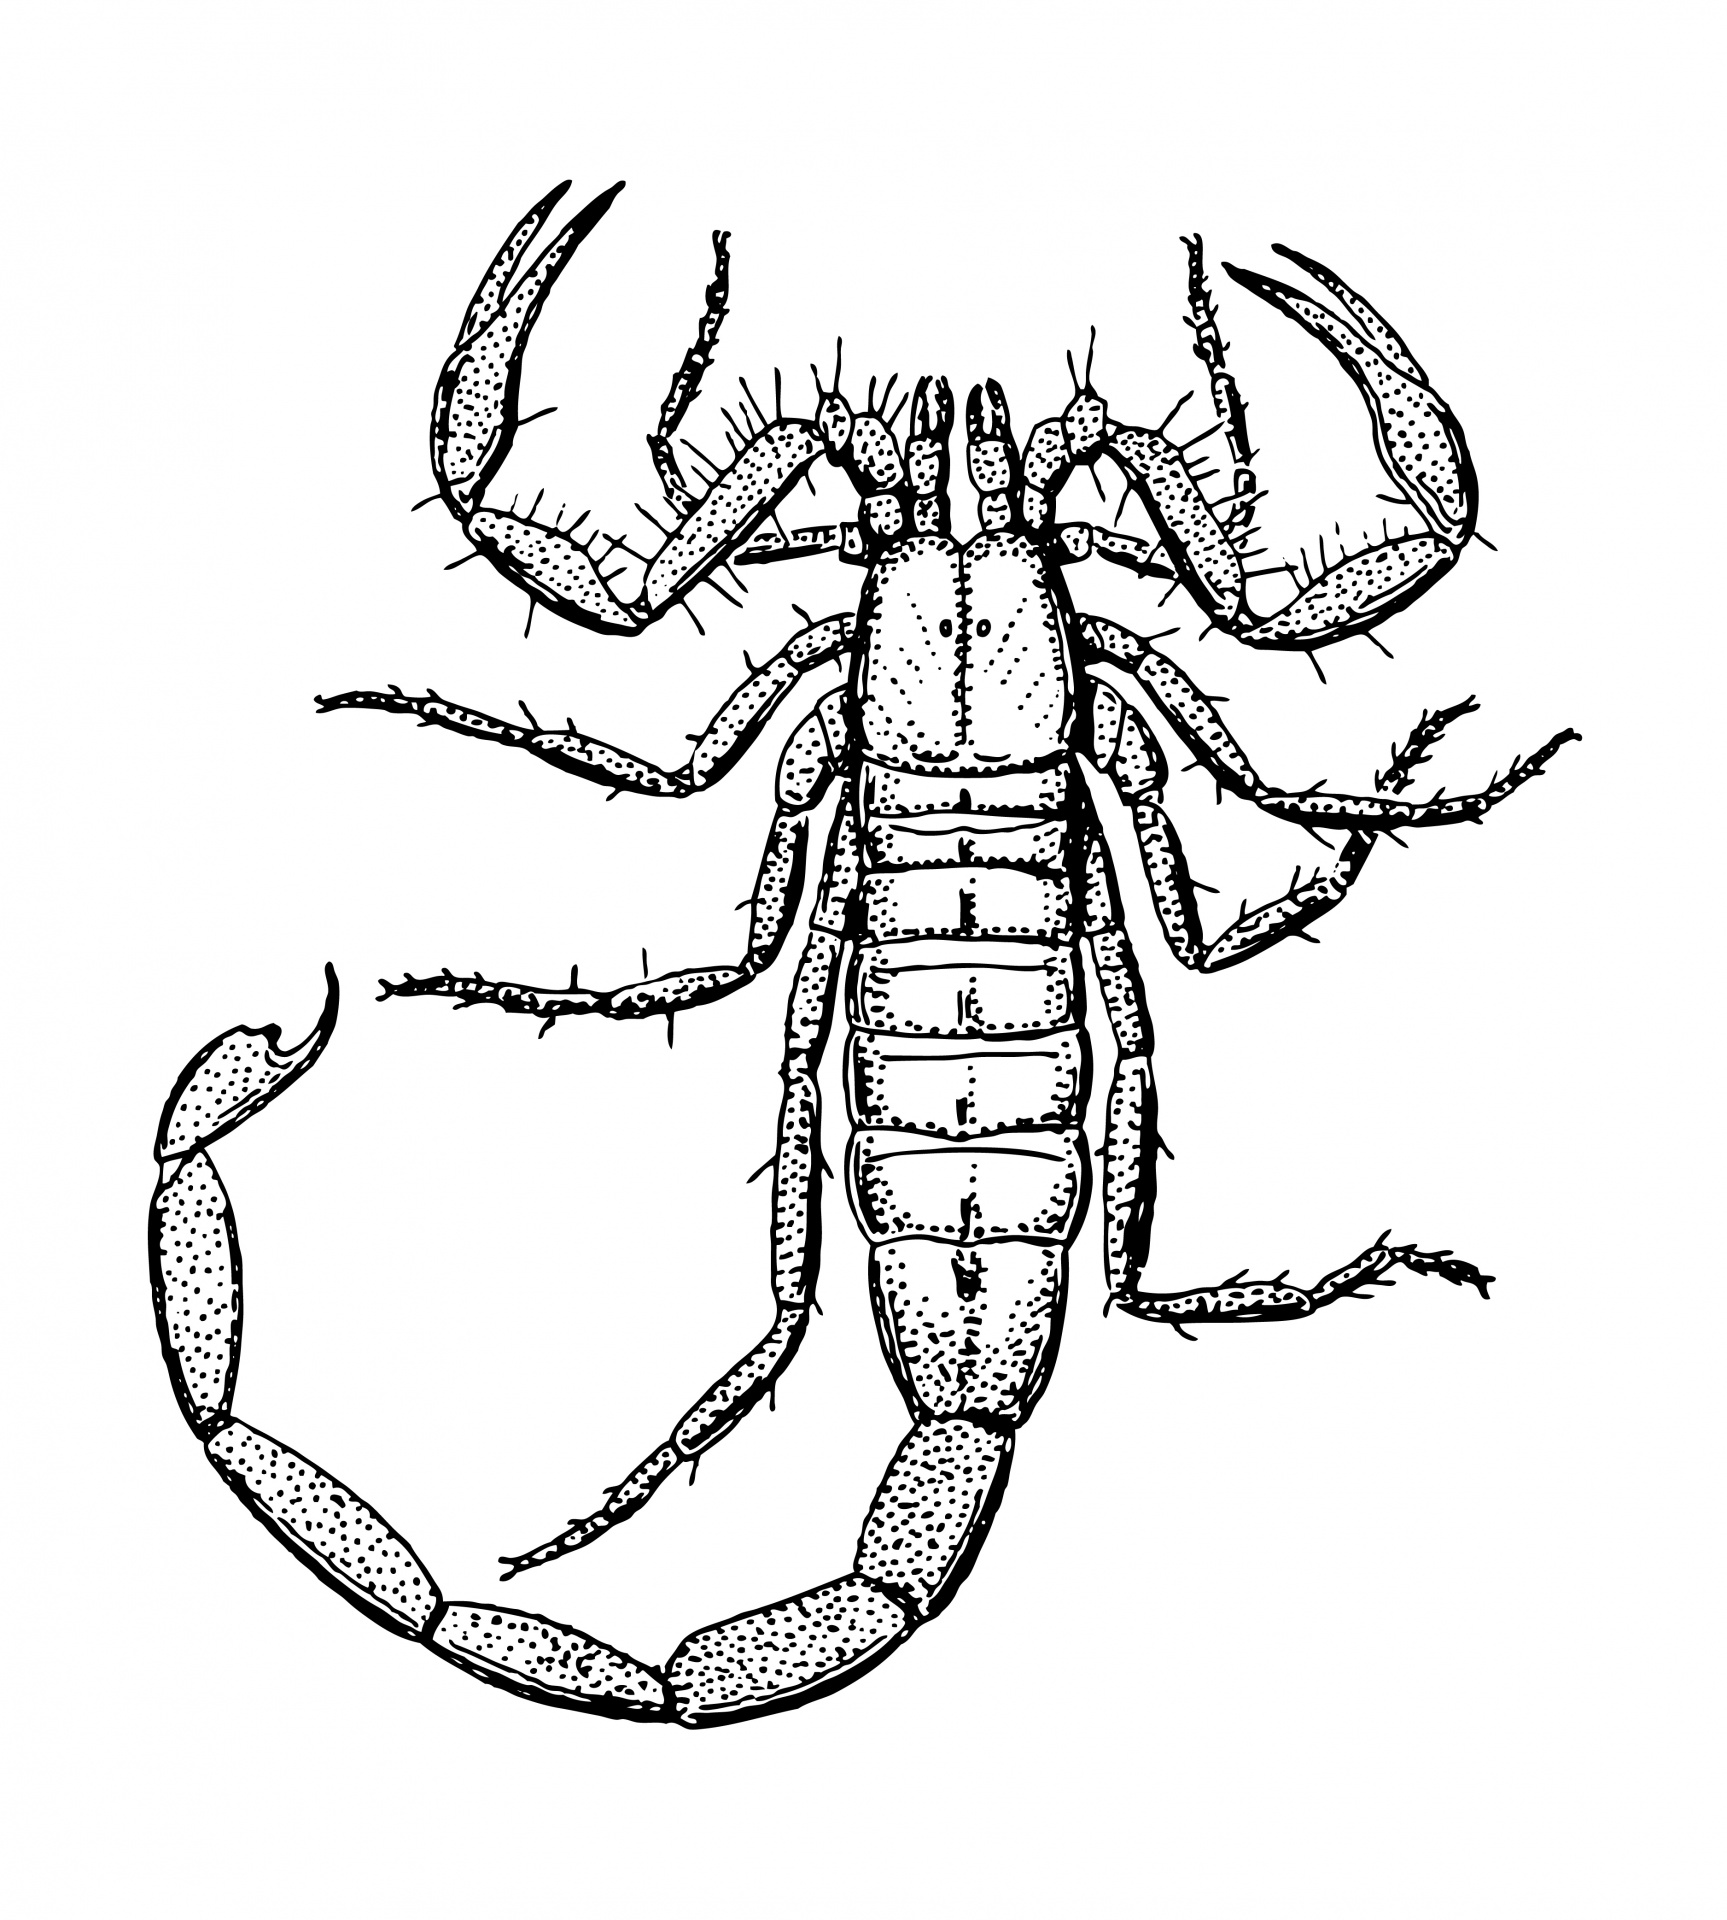 Scorpion,clipart,clip art,art,illustration.